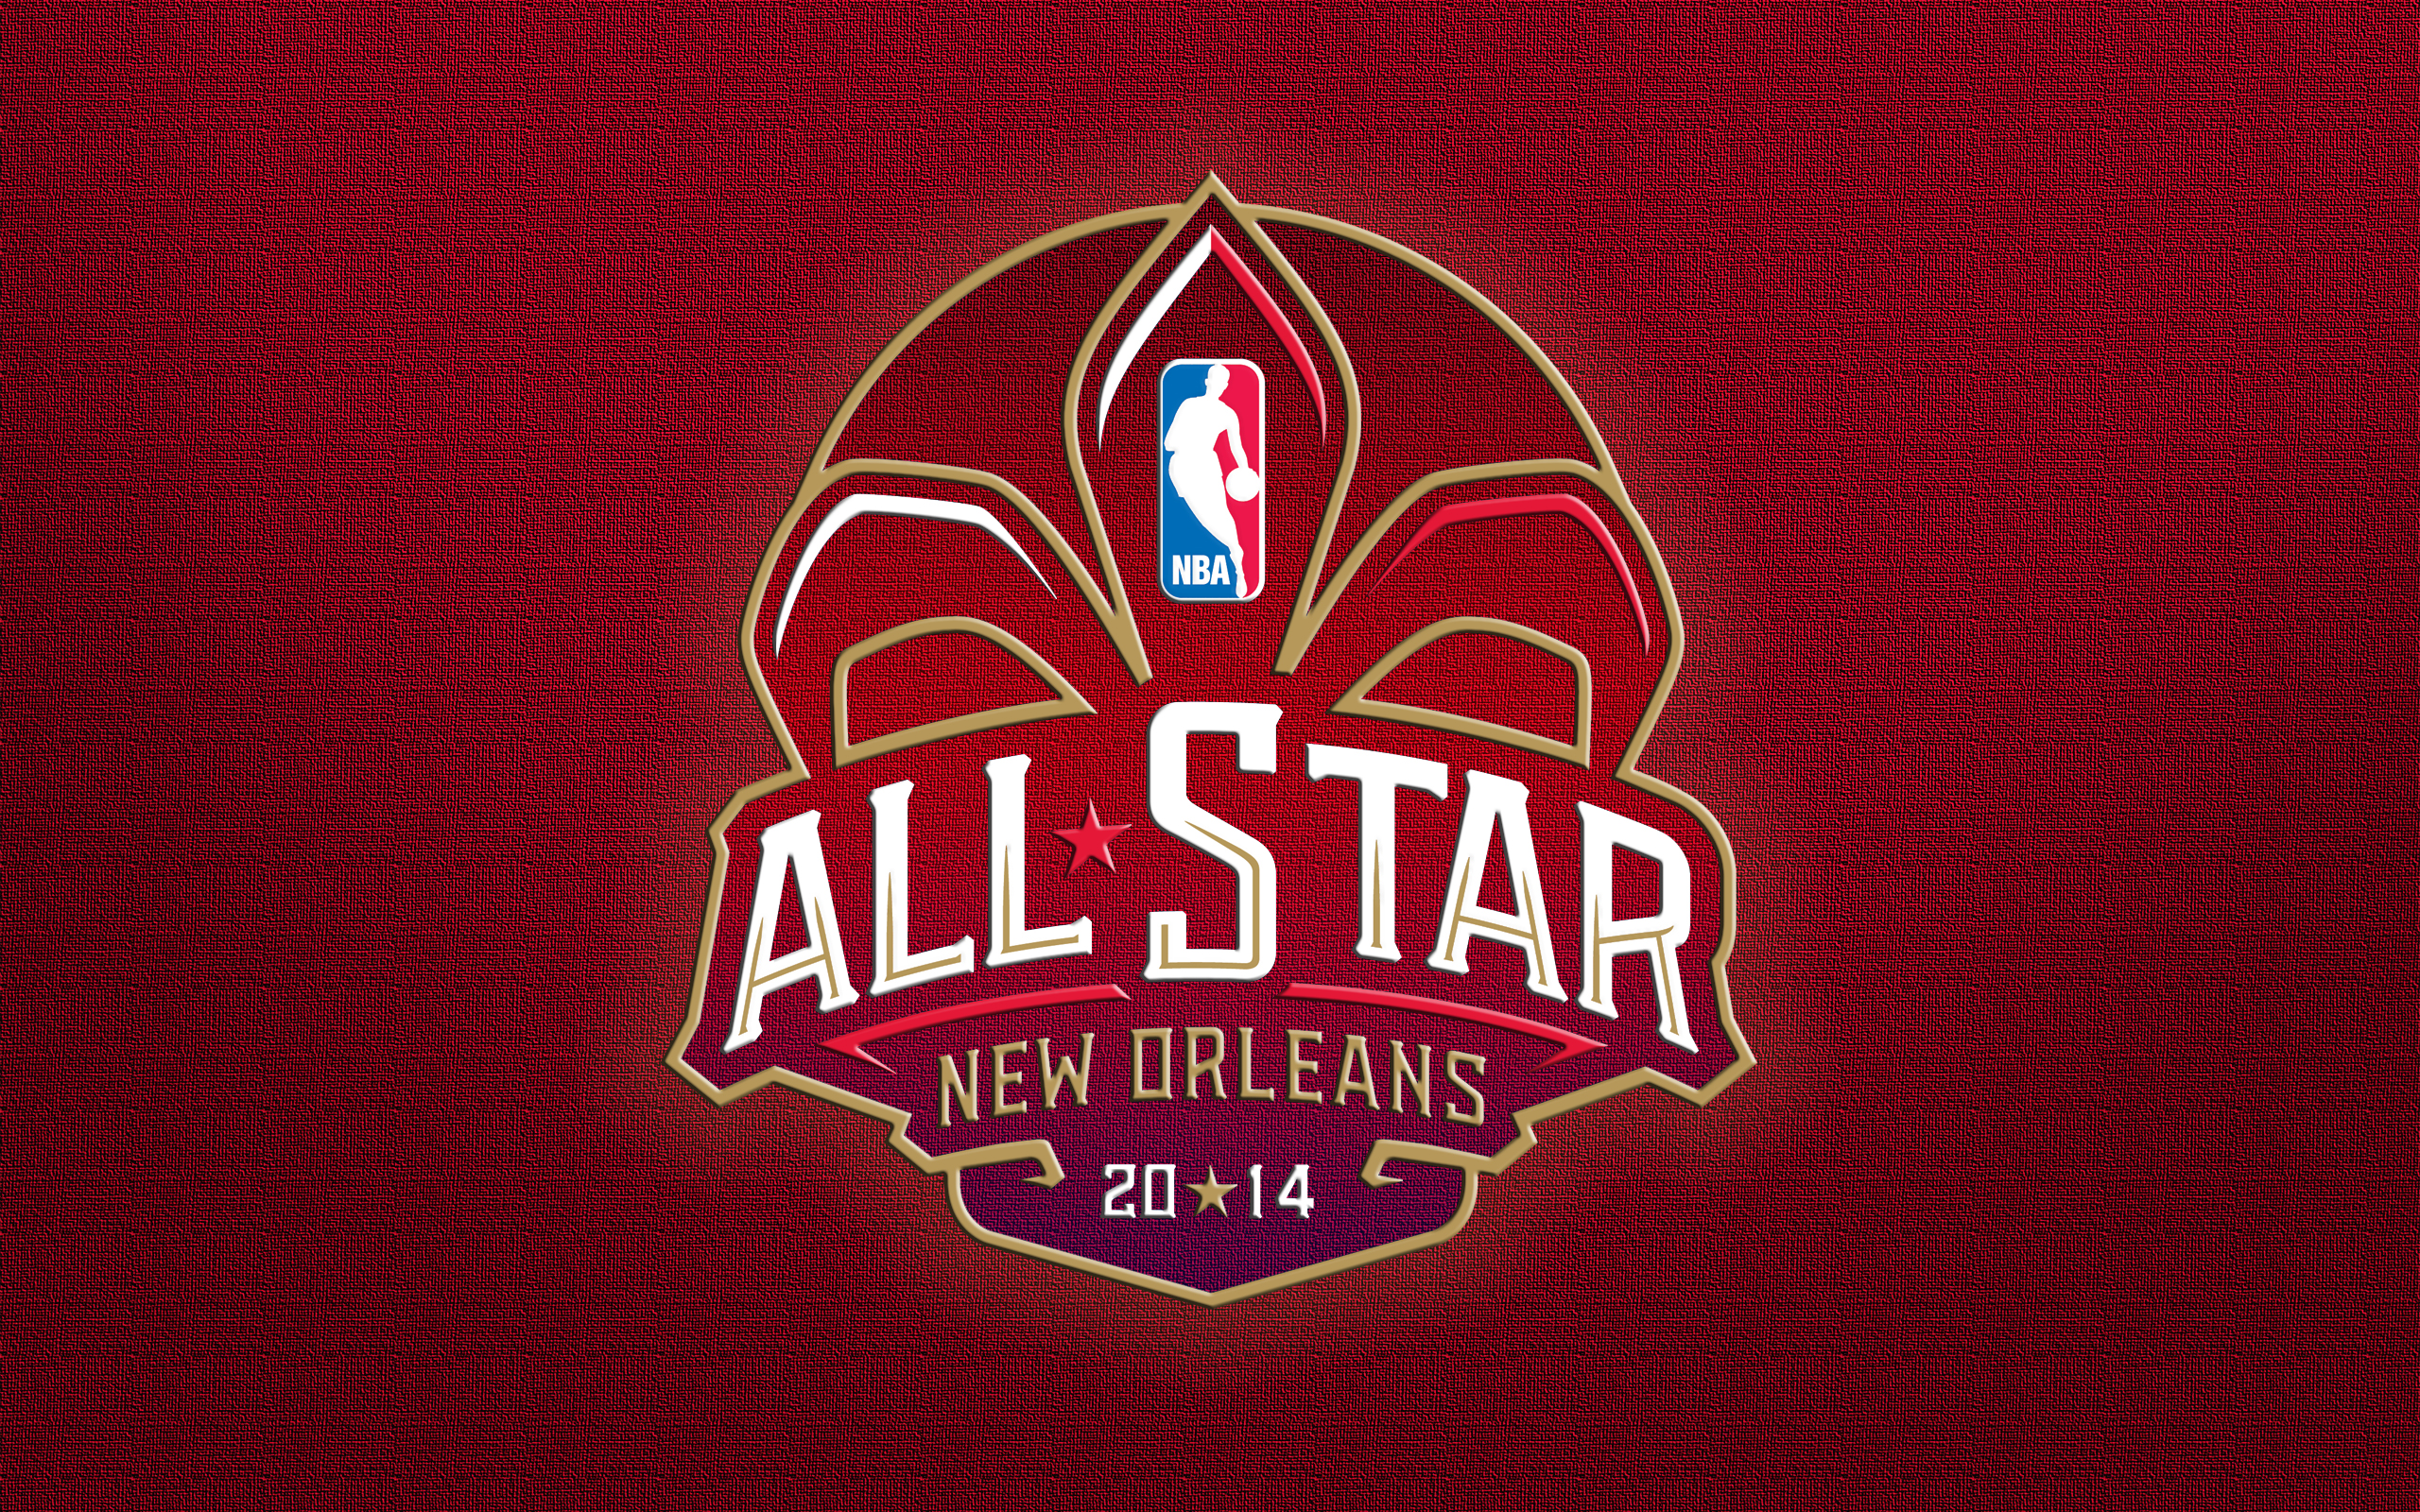 New Orleans Nba All Star Game 2014 Logo Wallpaper1 The